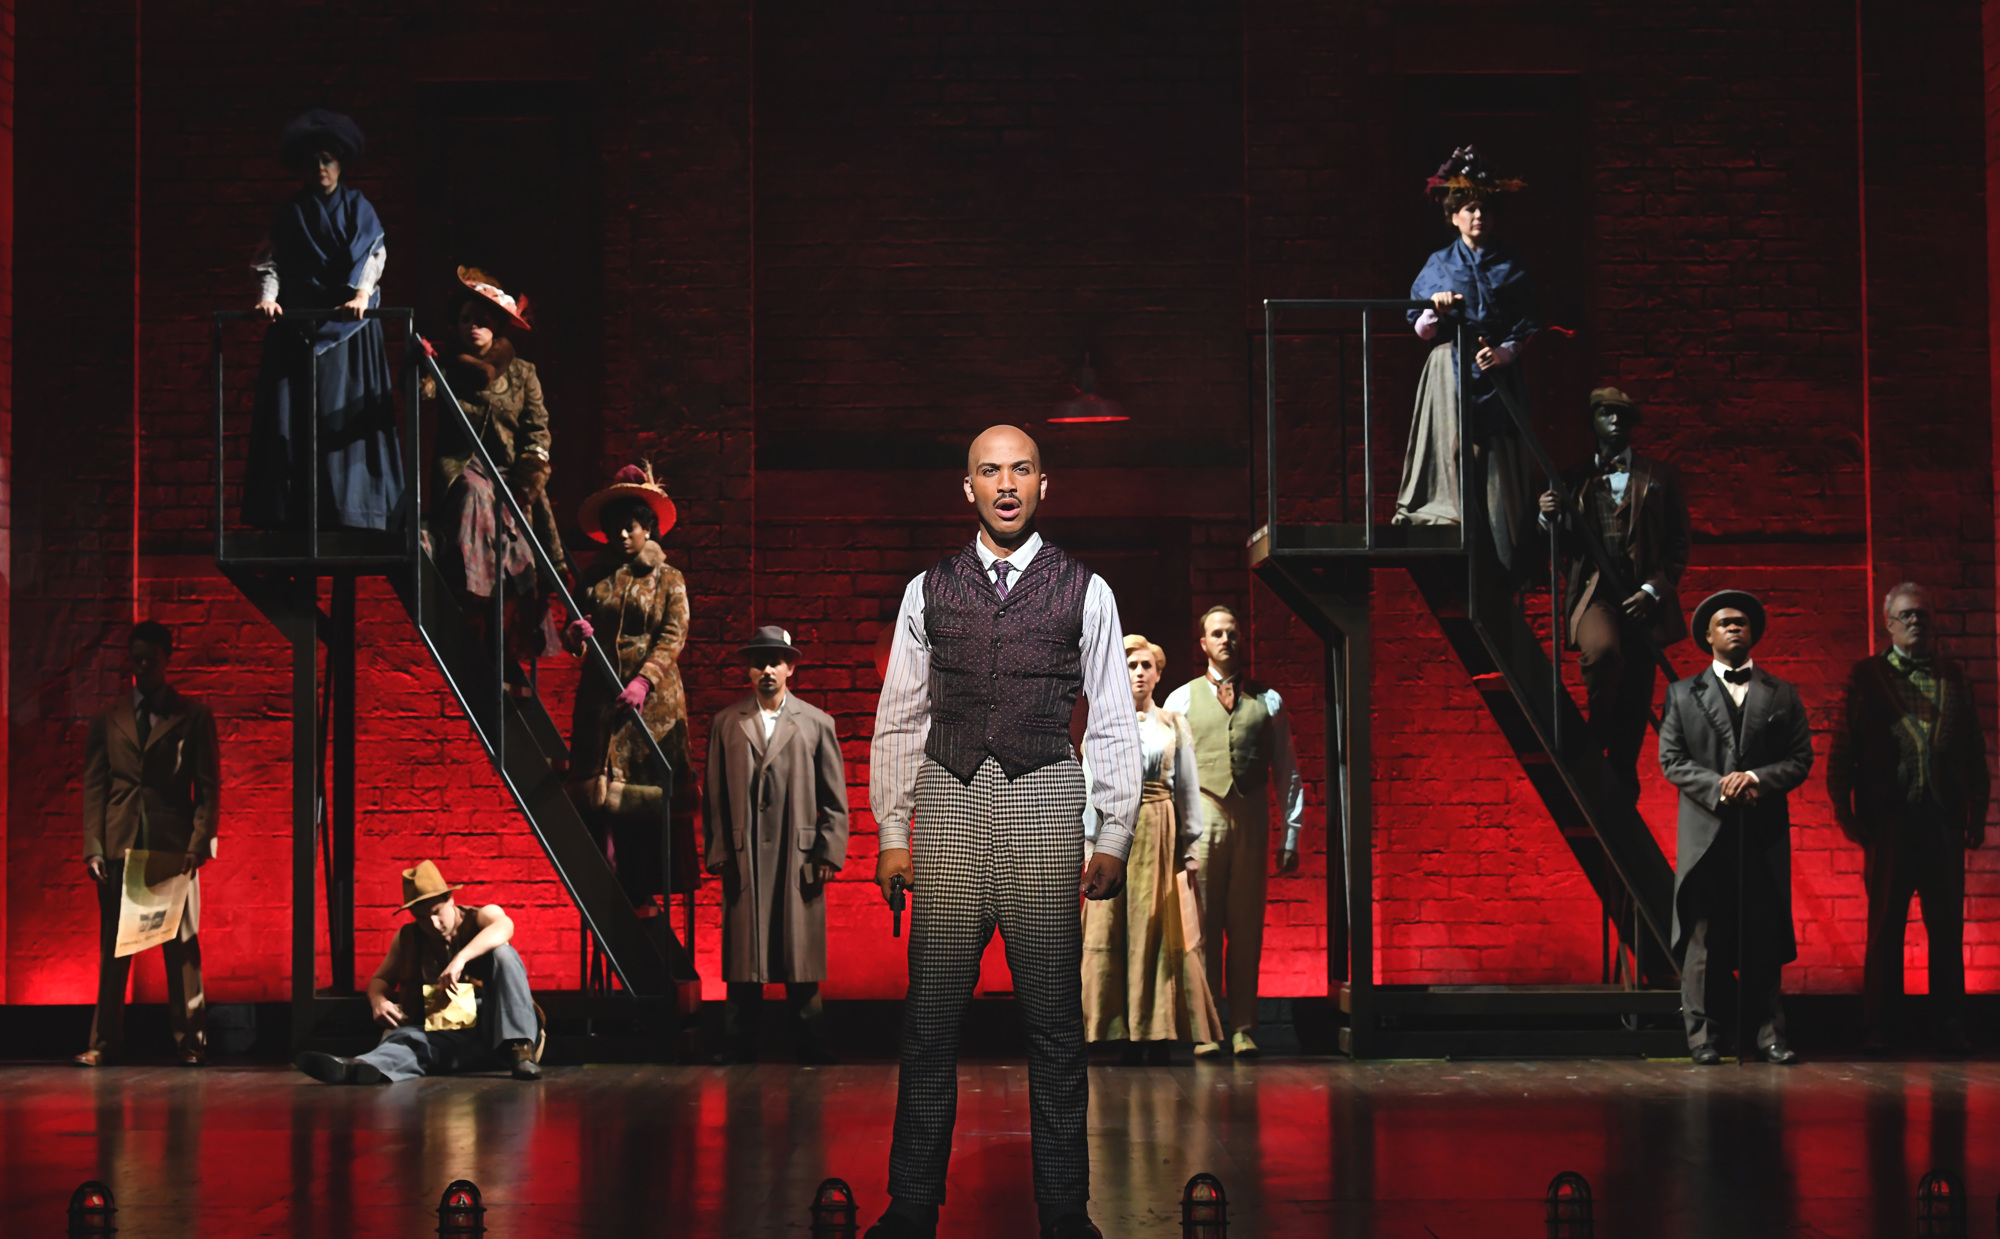 RAGTIME, Asolo Repertory Theatre, 2018